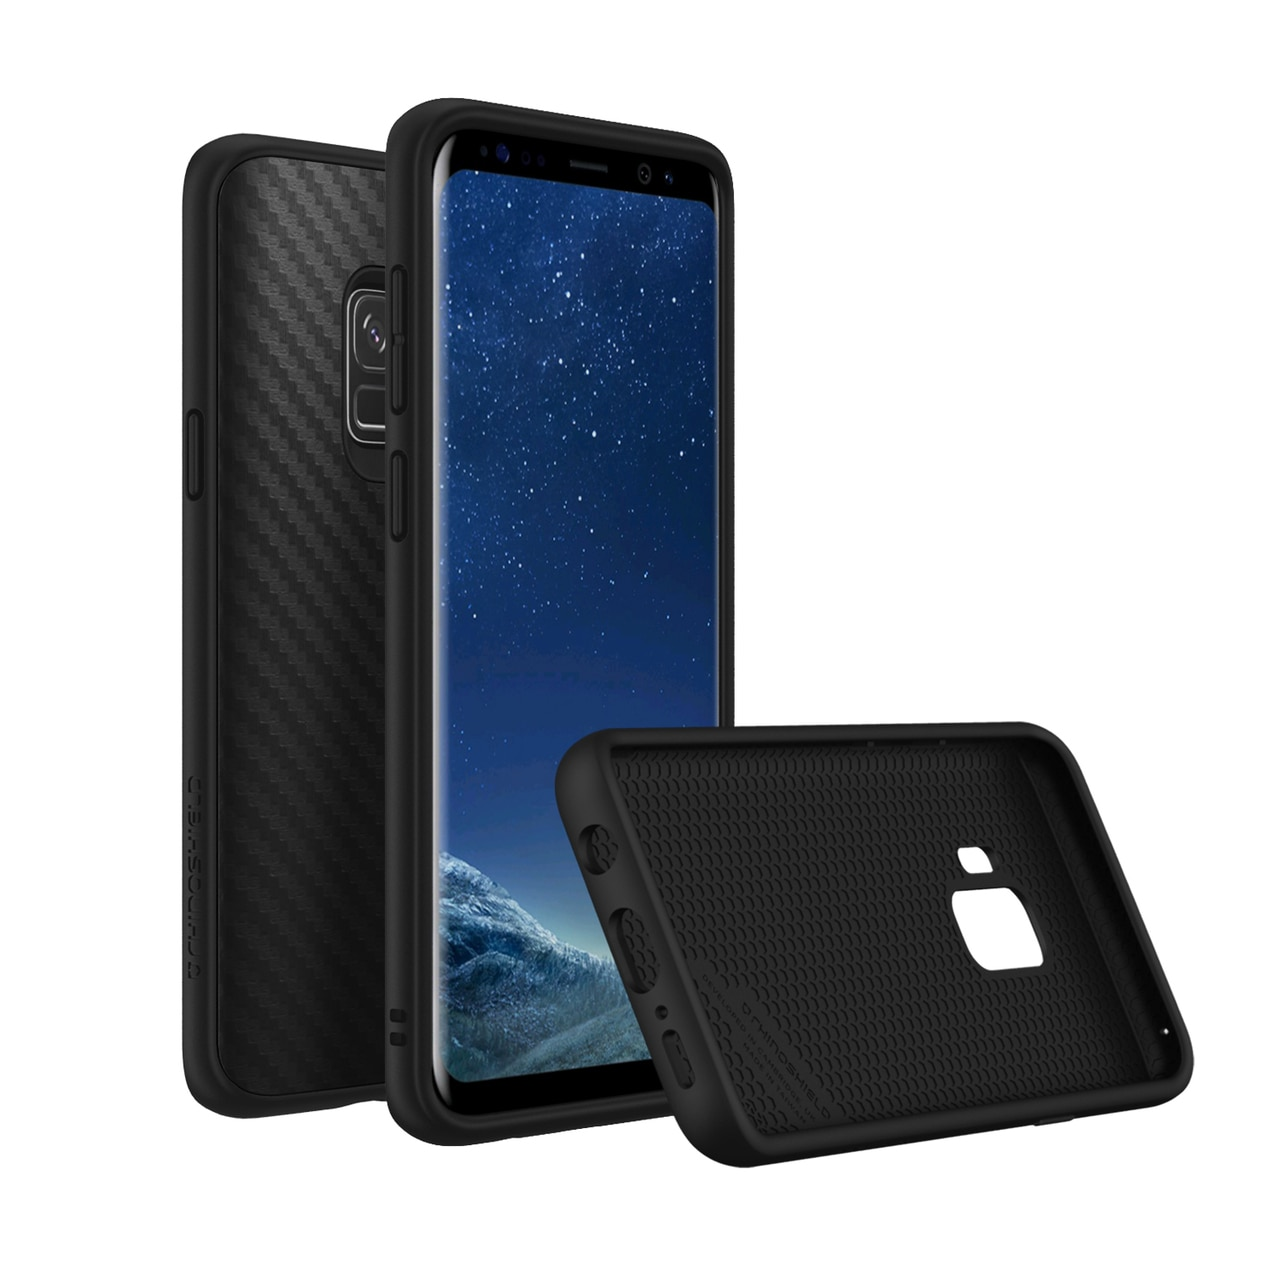 RhinoShield Samsung Galaxy S9 SolidSuit Case - Carbon Fiber